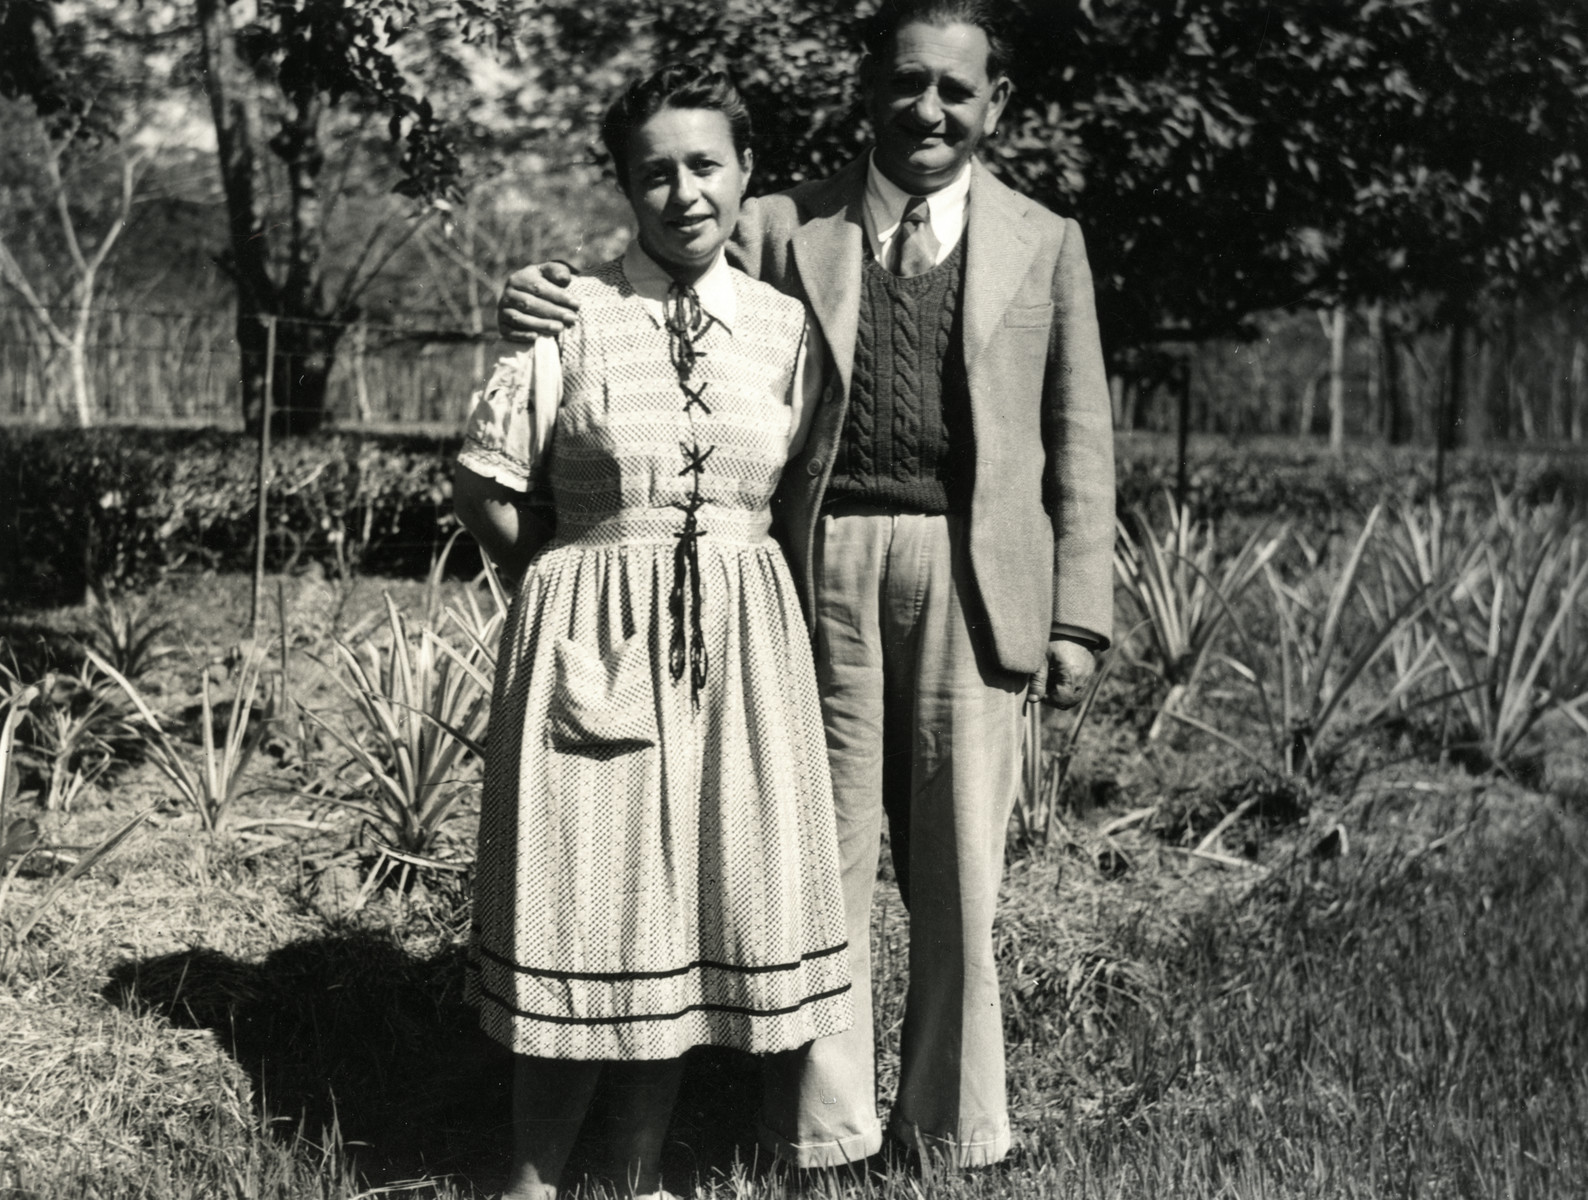 Maurice and Esther Weeg pose together in a garden in India.